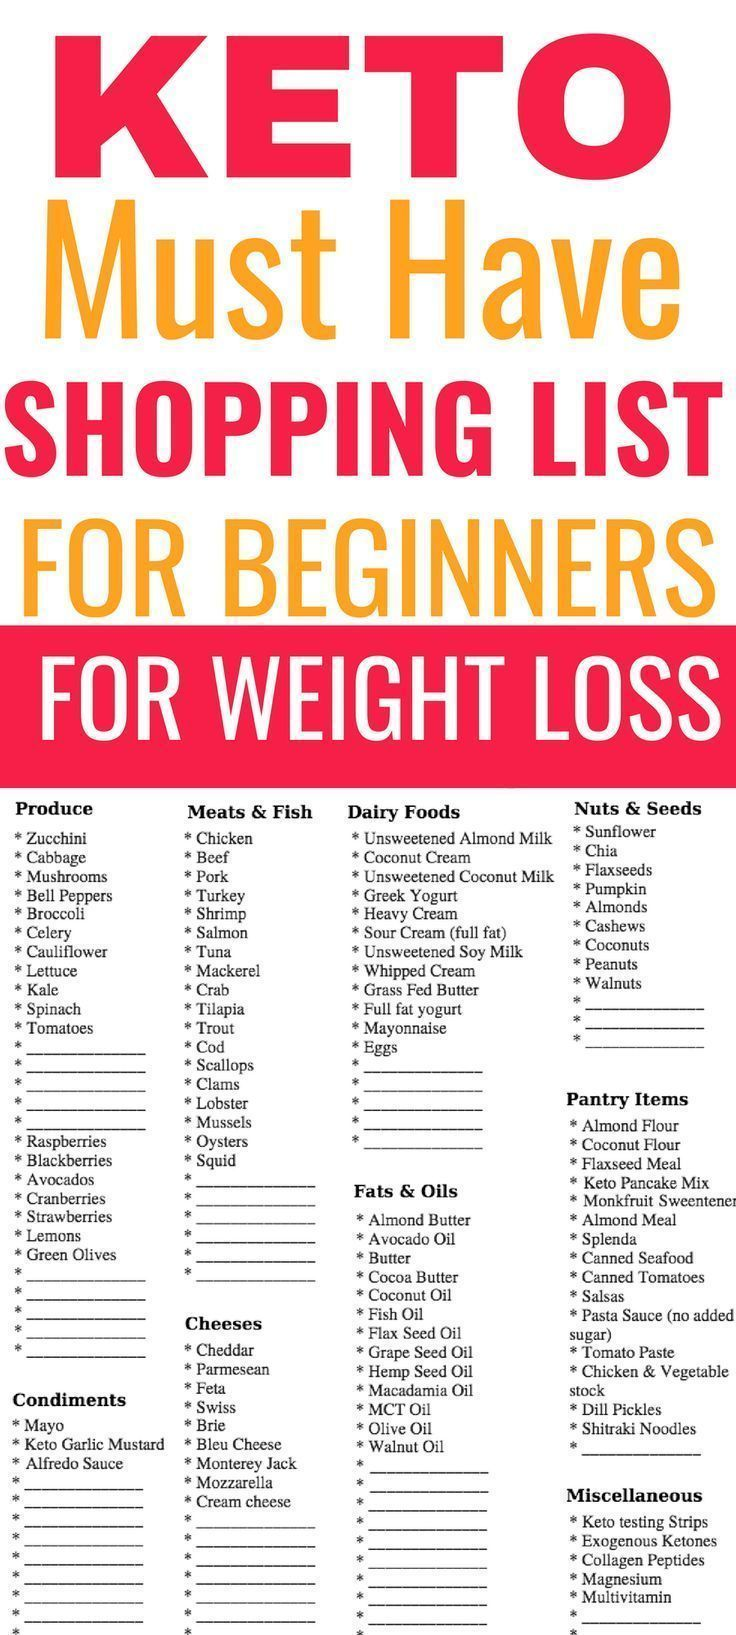 -   This ketogenic shopping list is THE EBST! I've finally found a list of all the groceries and product I need on the keto diet to lose weight and eat healthy meals! Now I can make some awesome keto recipes and lose weight! Definitely pinning this for later!